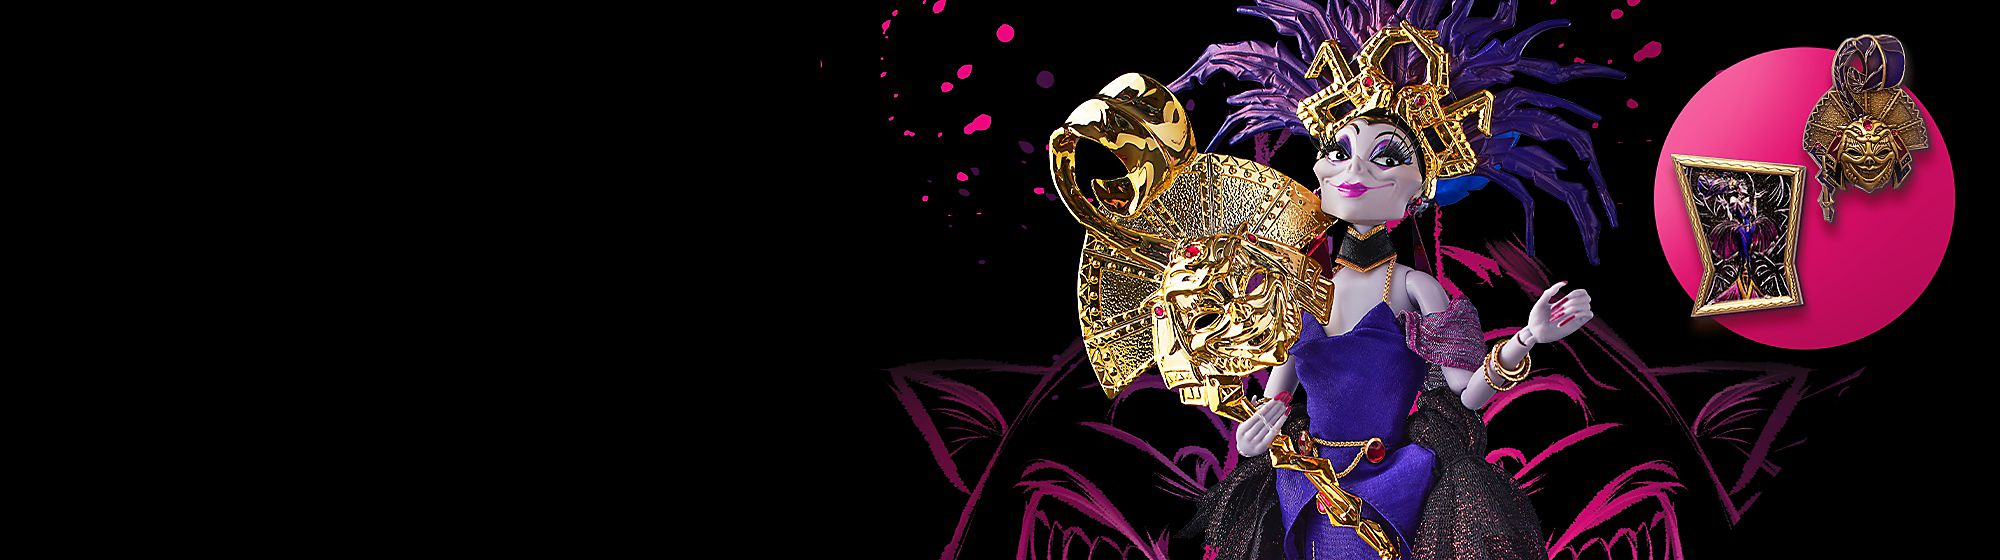 Limited Edition Discover our magical range of limited edition products, including art, figurines, pins and more Yzma | Releases 27th October | Limited to 1,000 in Europe